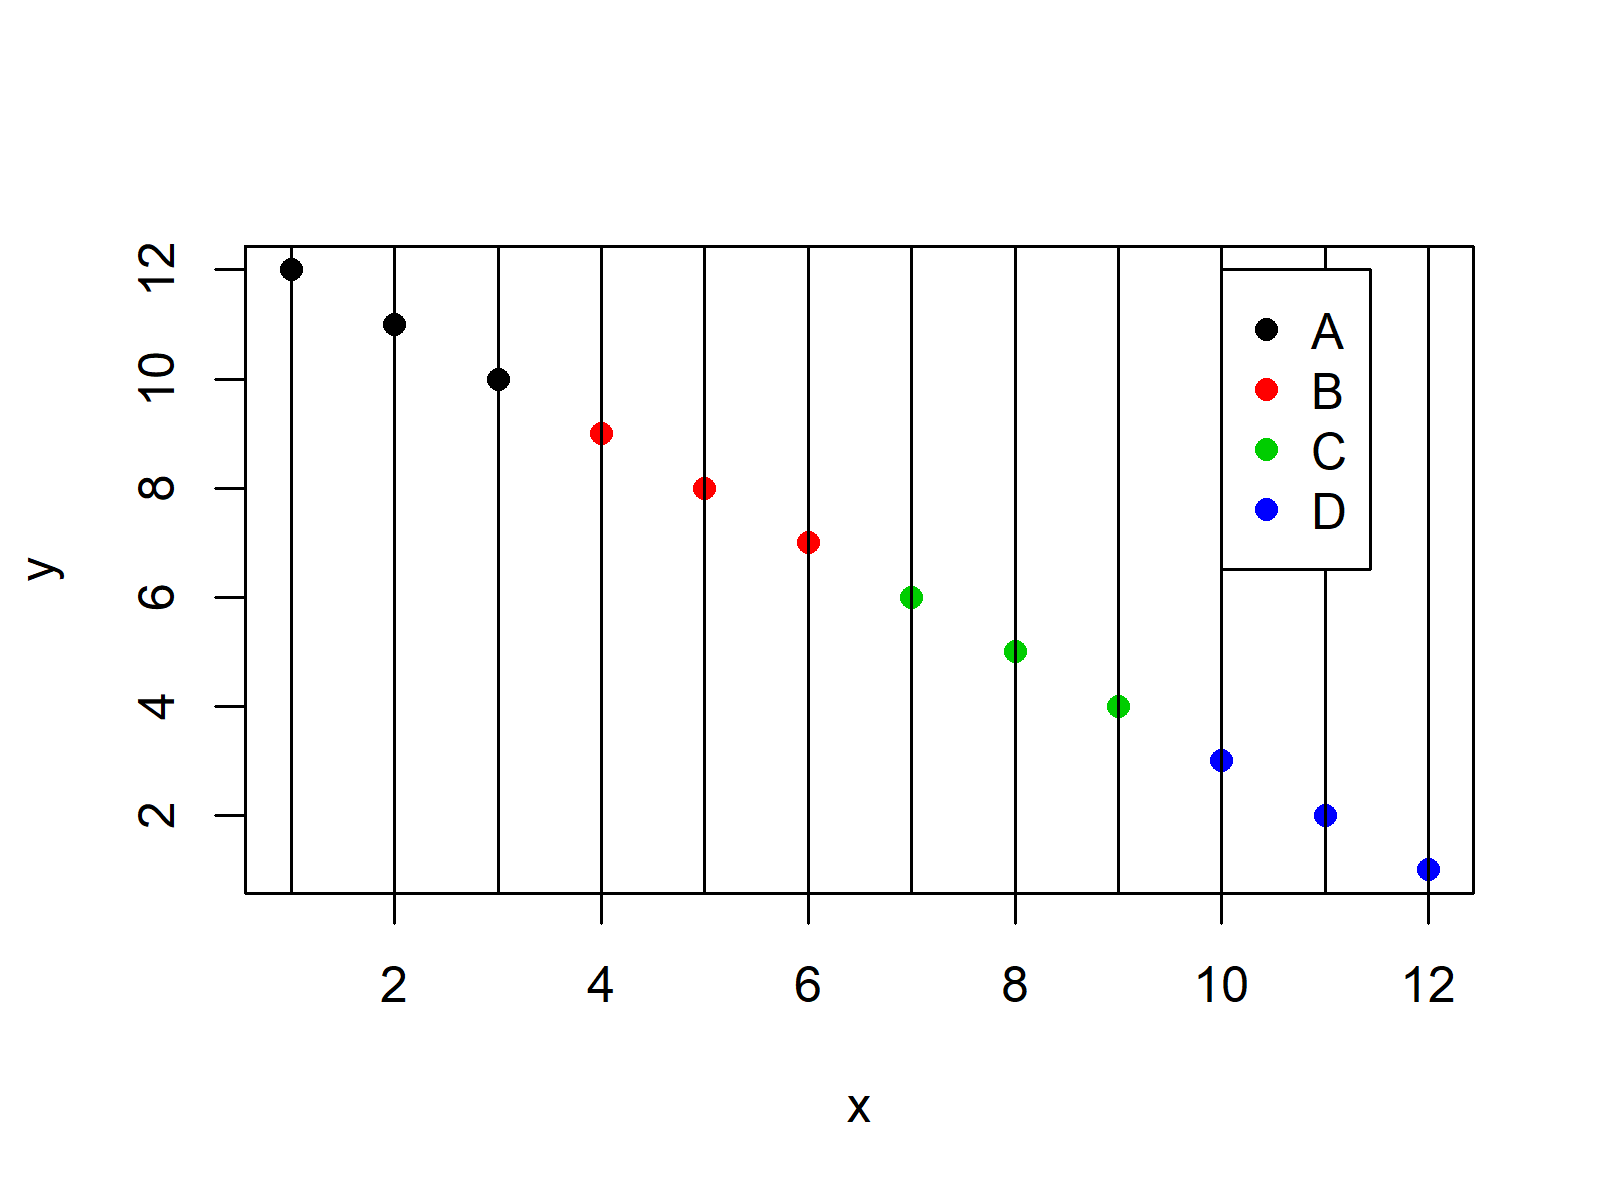 r graph figure 1 plot legend without border and white background r